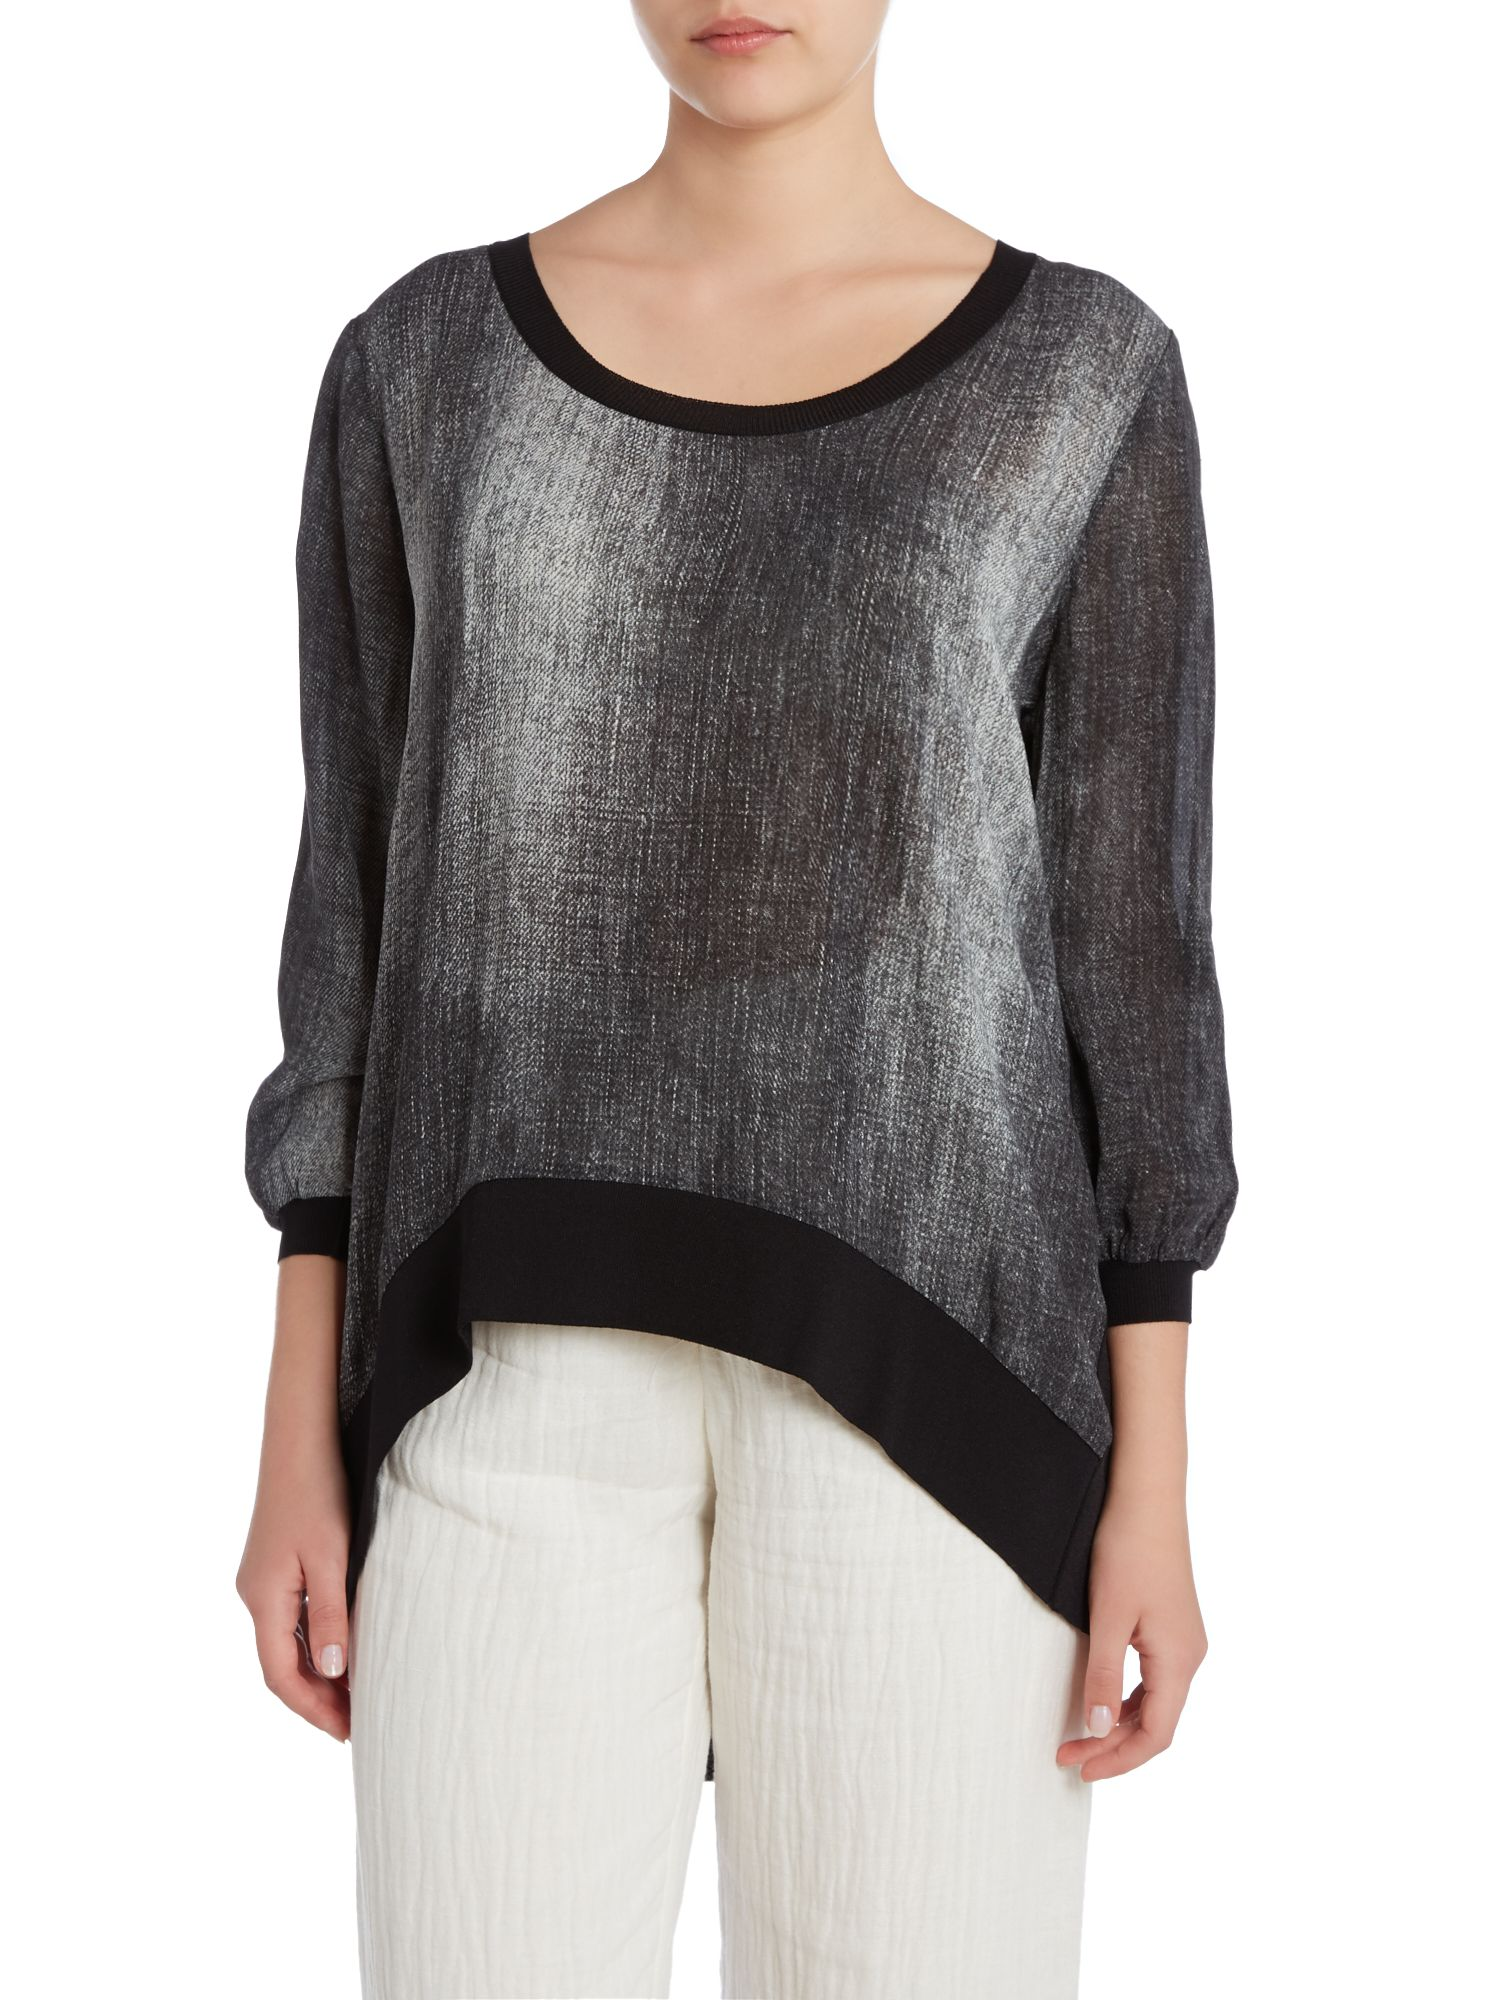 Shadow front high-low hem top with knitted back